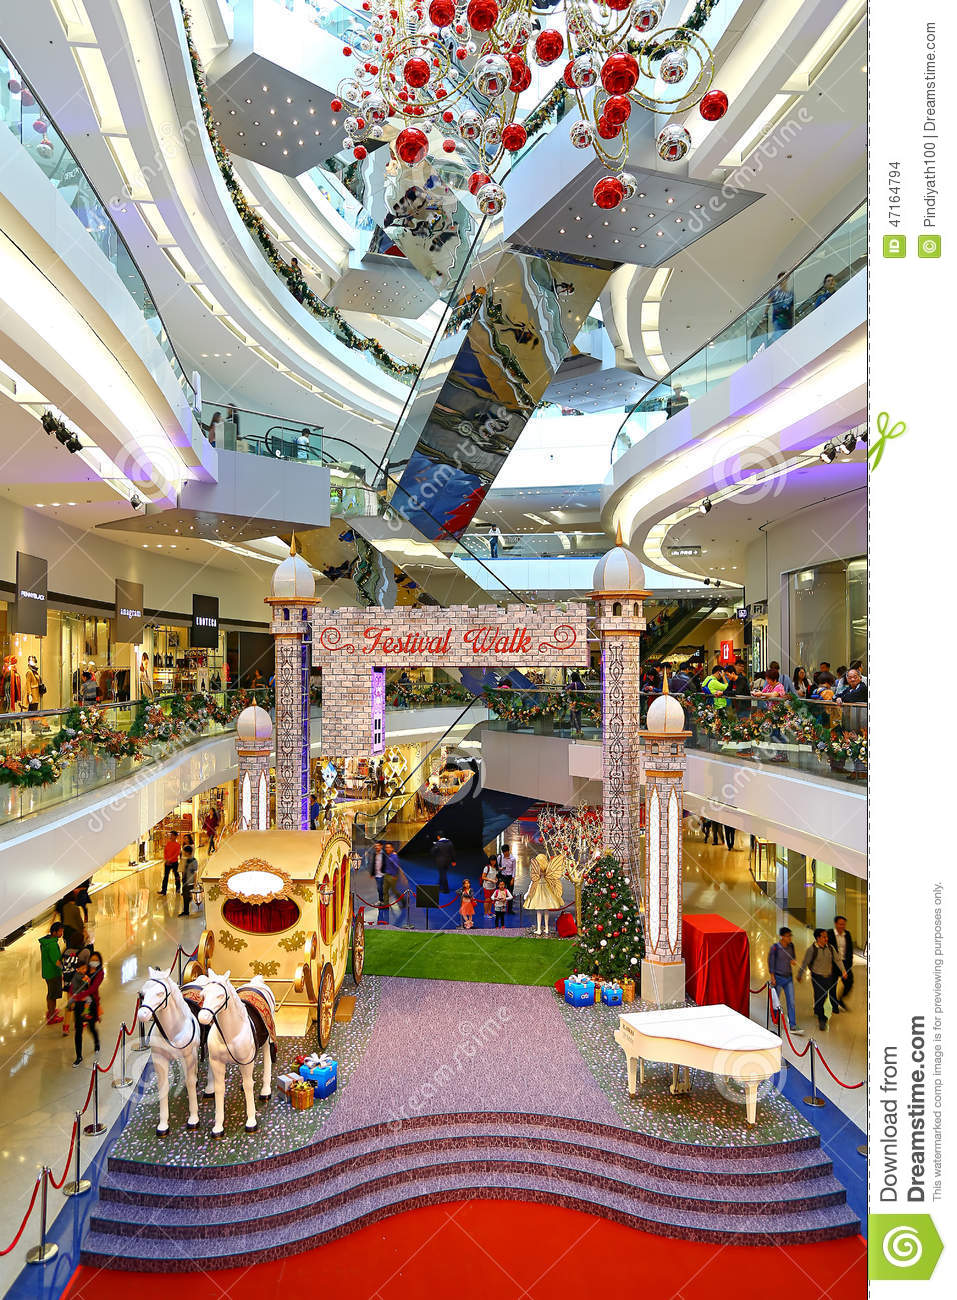 Christmas decoration at festival walk shopping mal for Decoration shopping